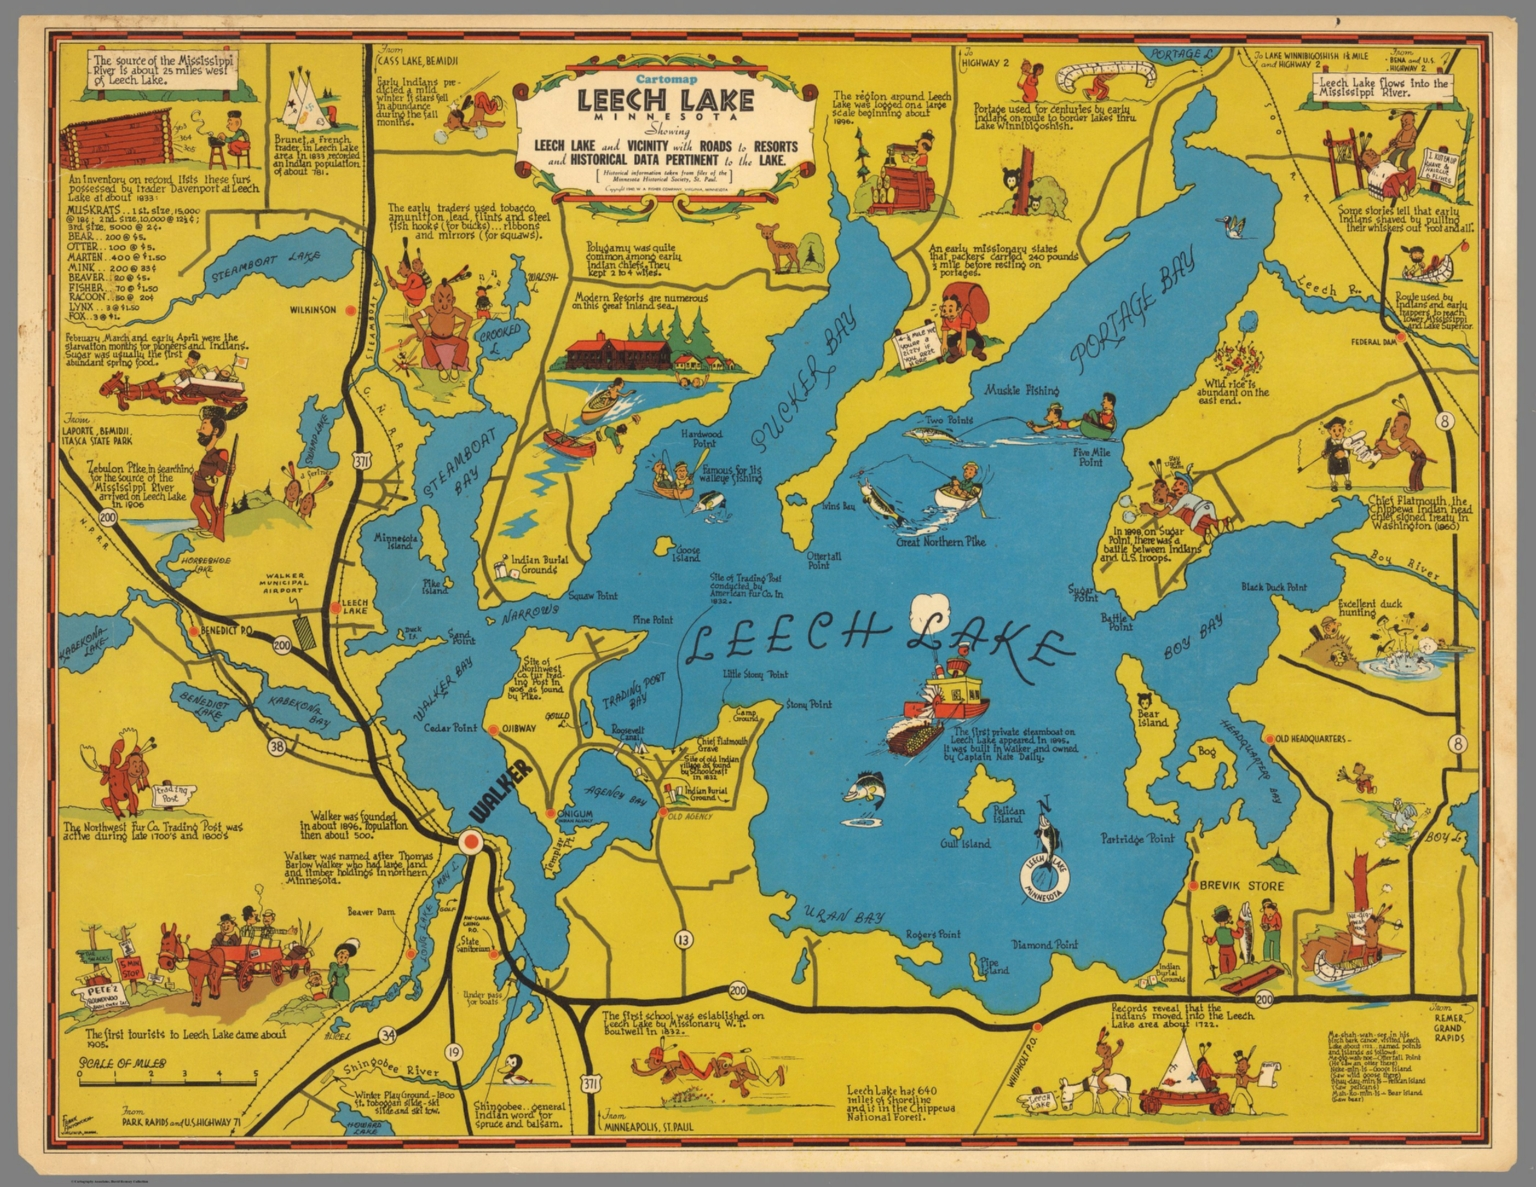 Leech Lake Map Cartomap Leech Lake, Minnesota   David Rumsey Historical Map